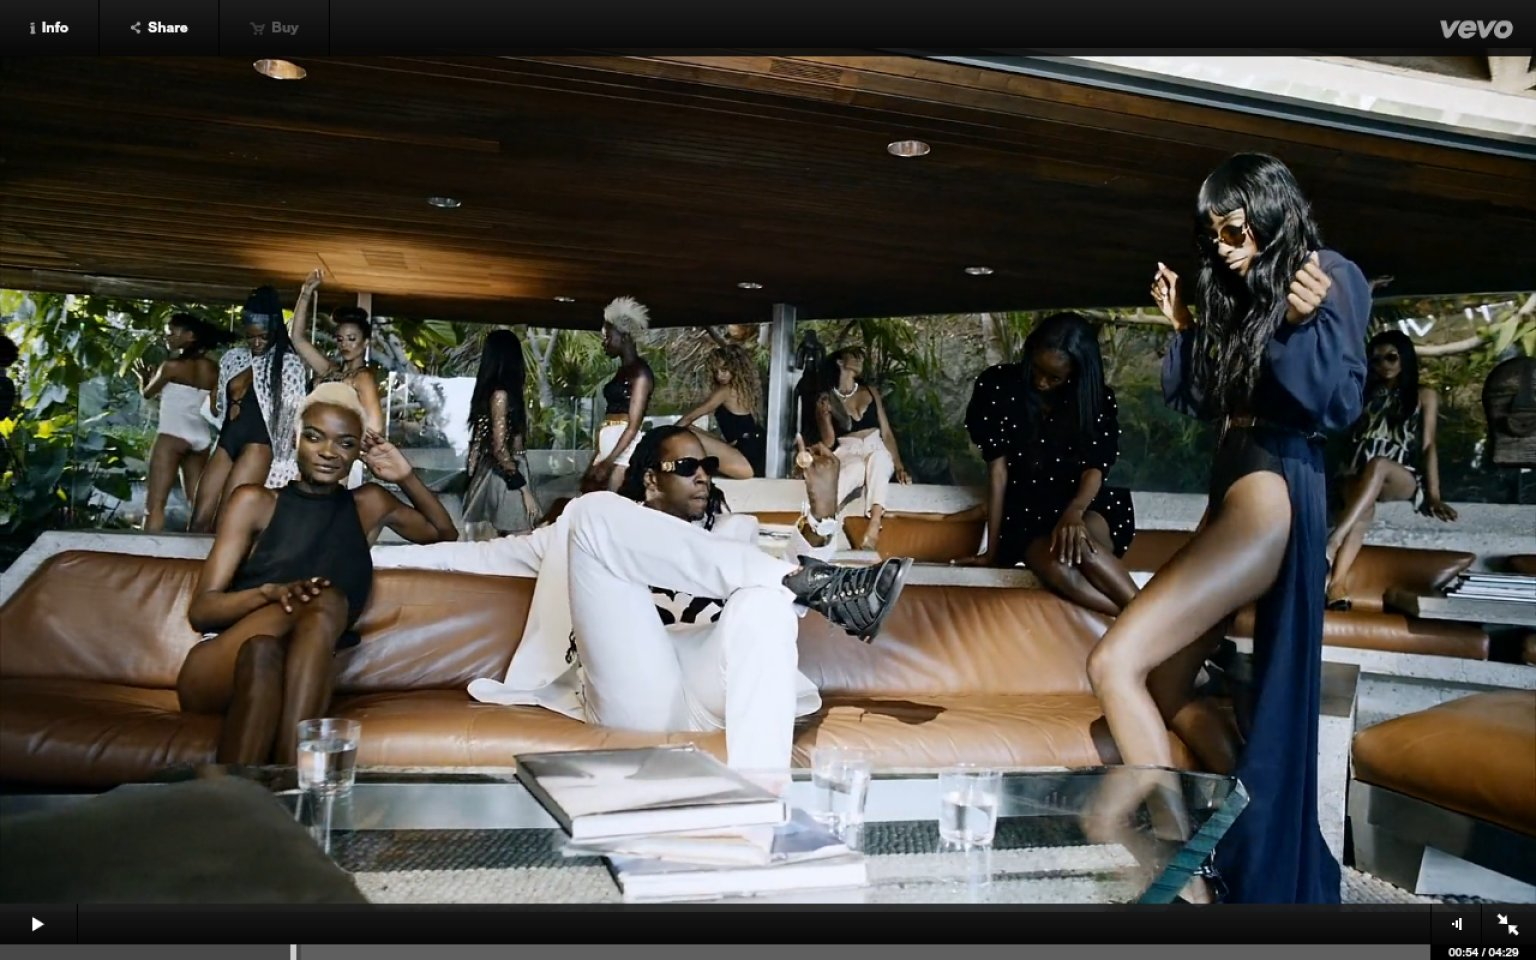 Chainz feds watching video features pharrell and many beautiful